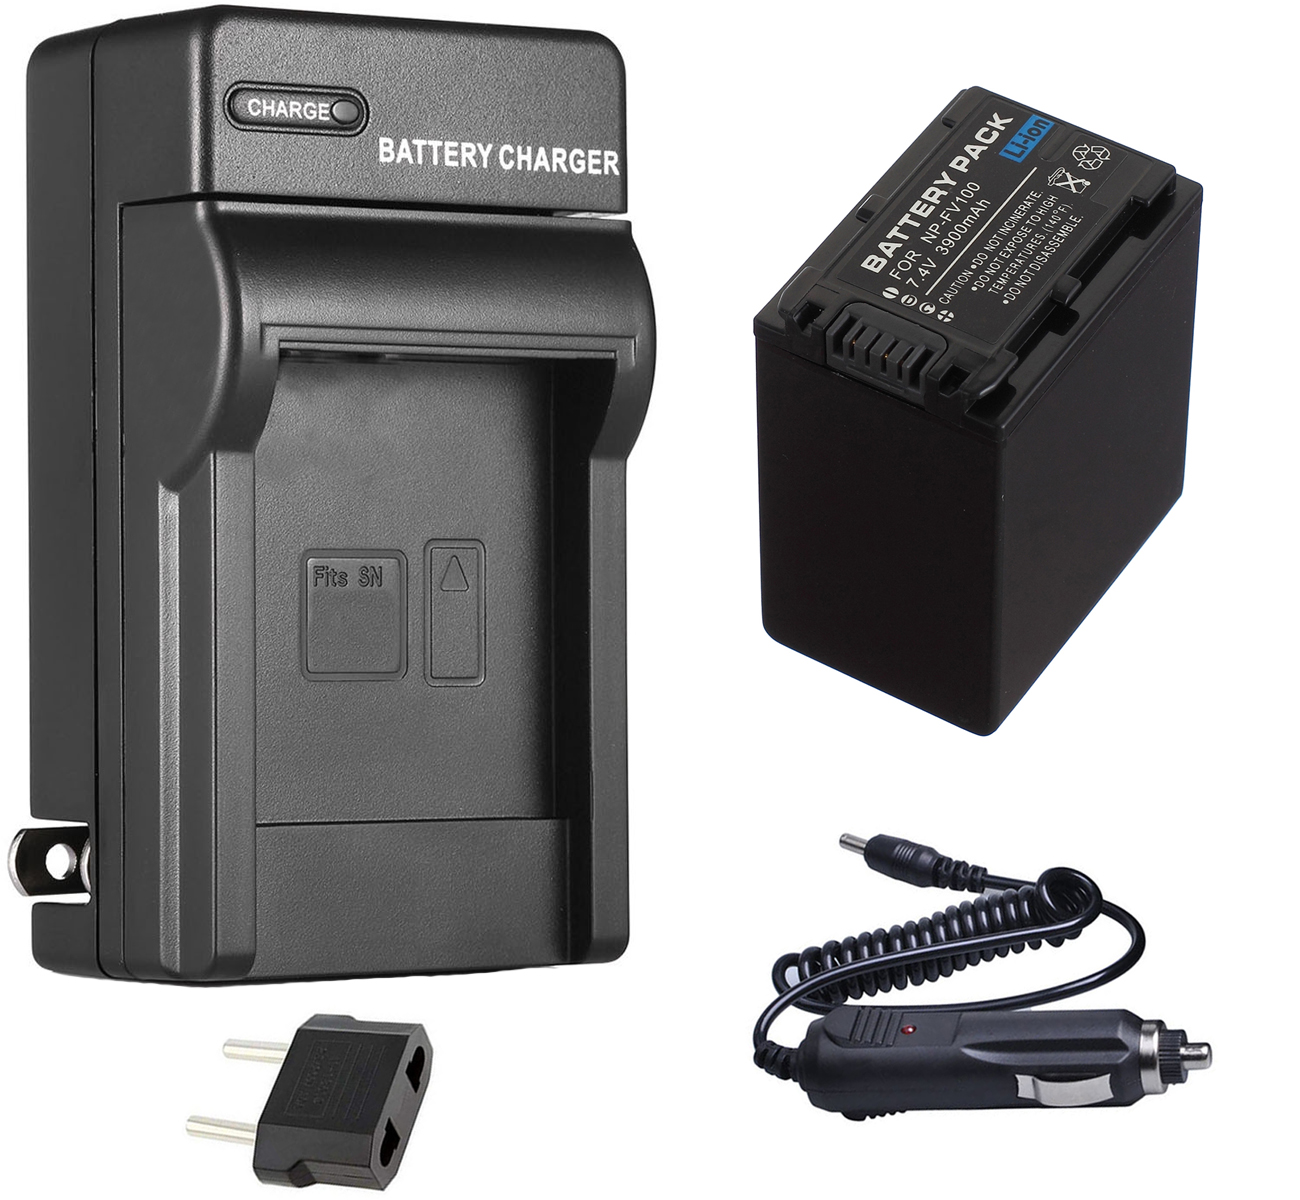 Battery Pack for Sony HDR-CX300 HDR-CX320 HDR-CX305 HDR-CX330 Handycam Camcorder